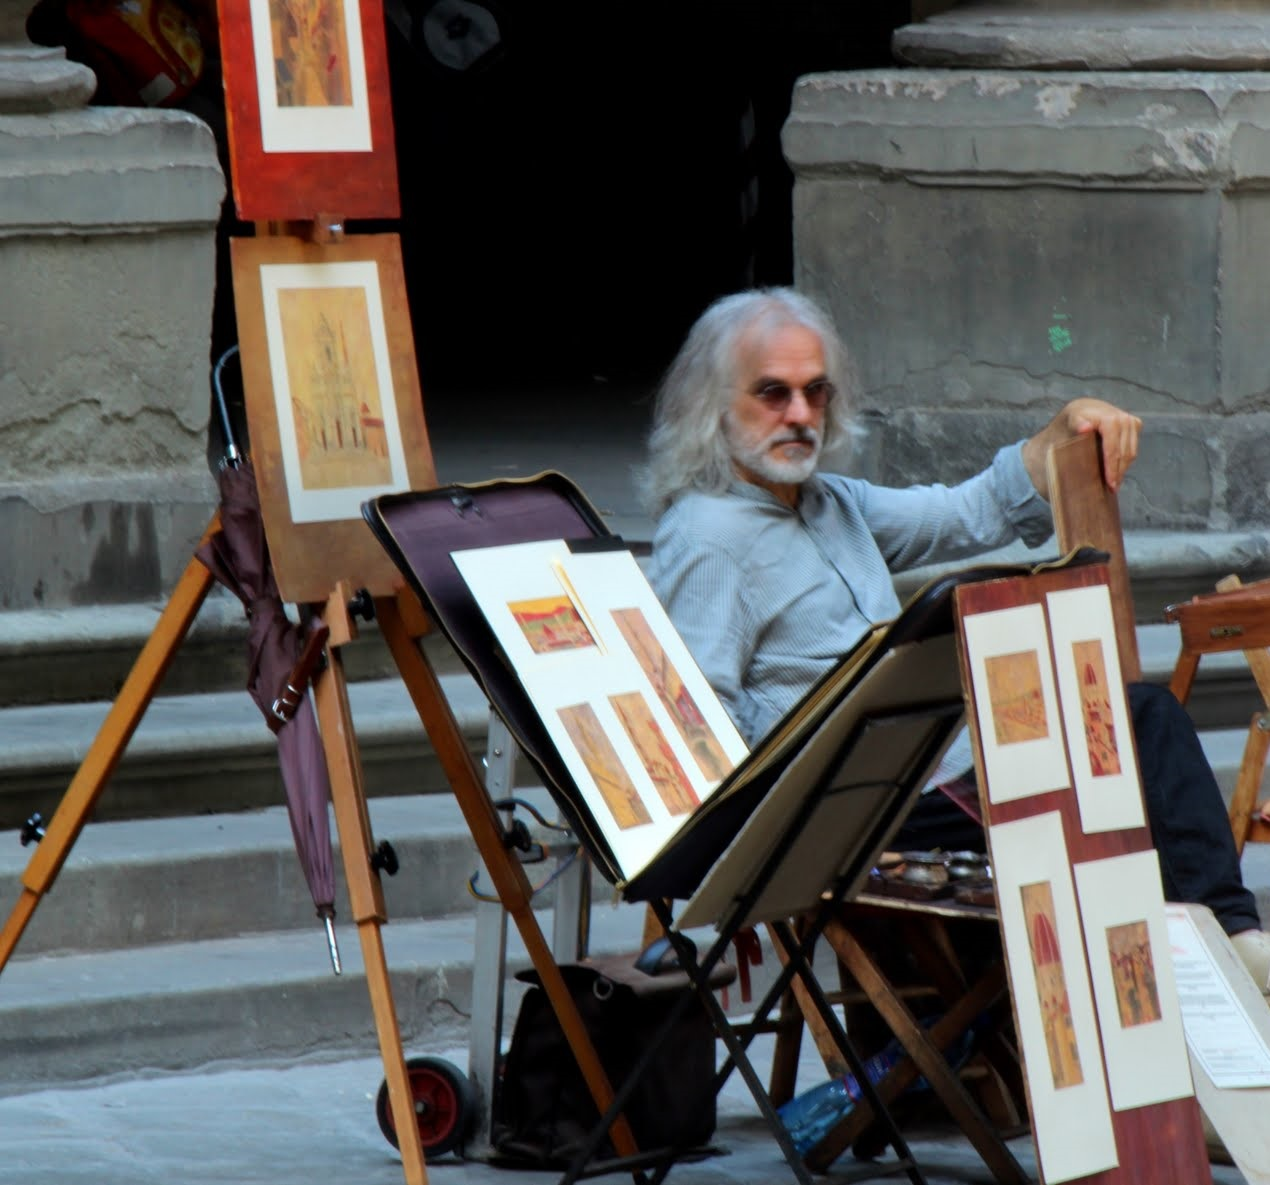 Sean Connery lookalike in Florence, Italy